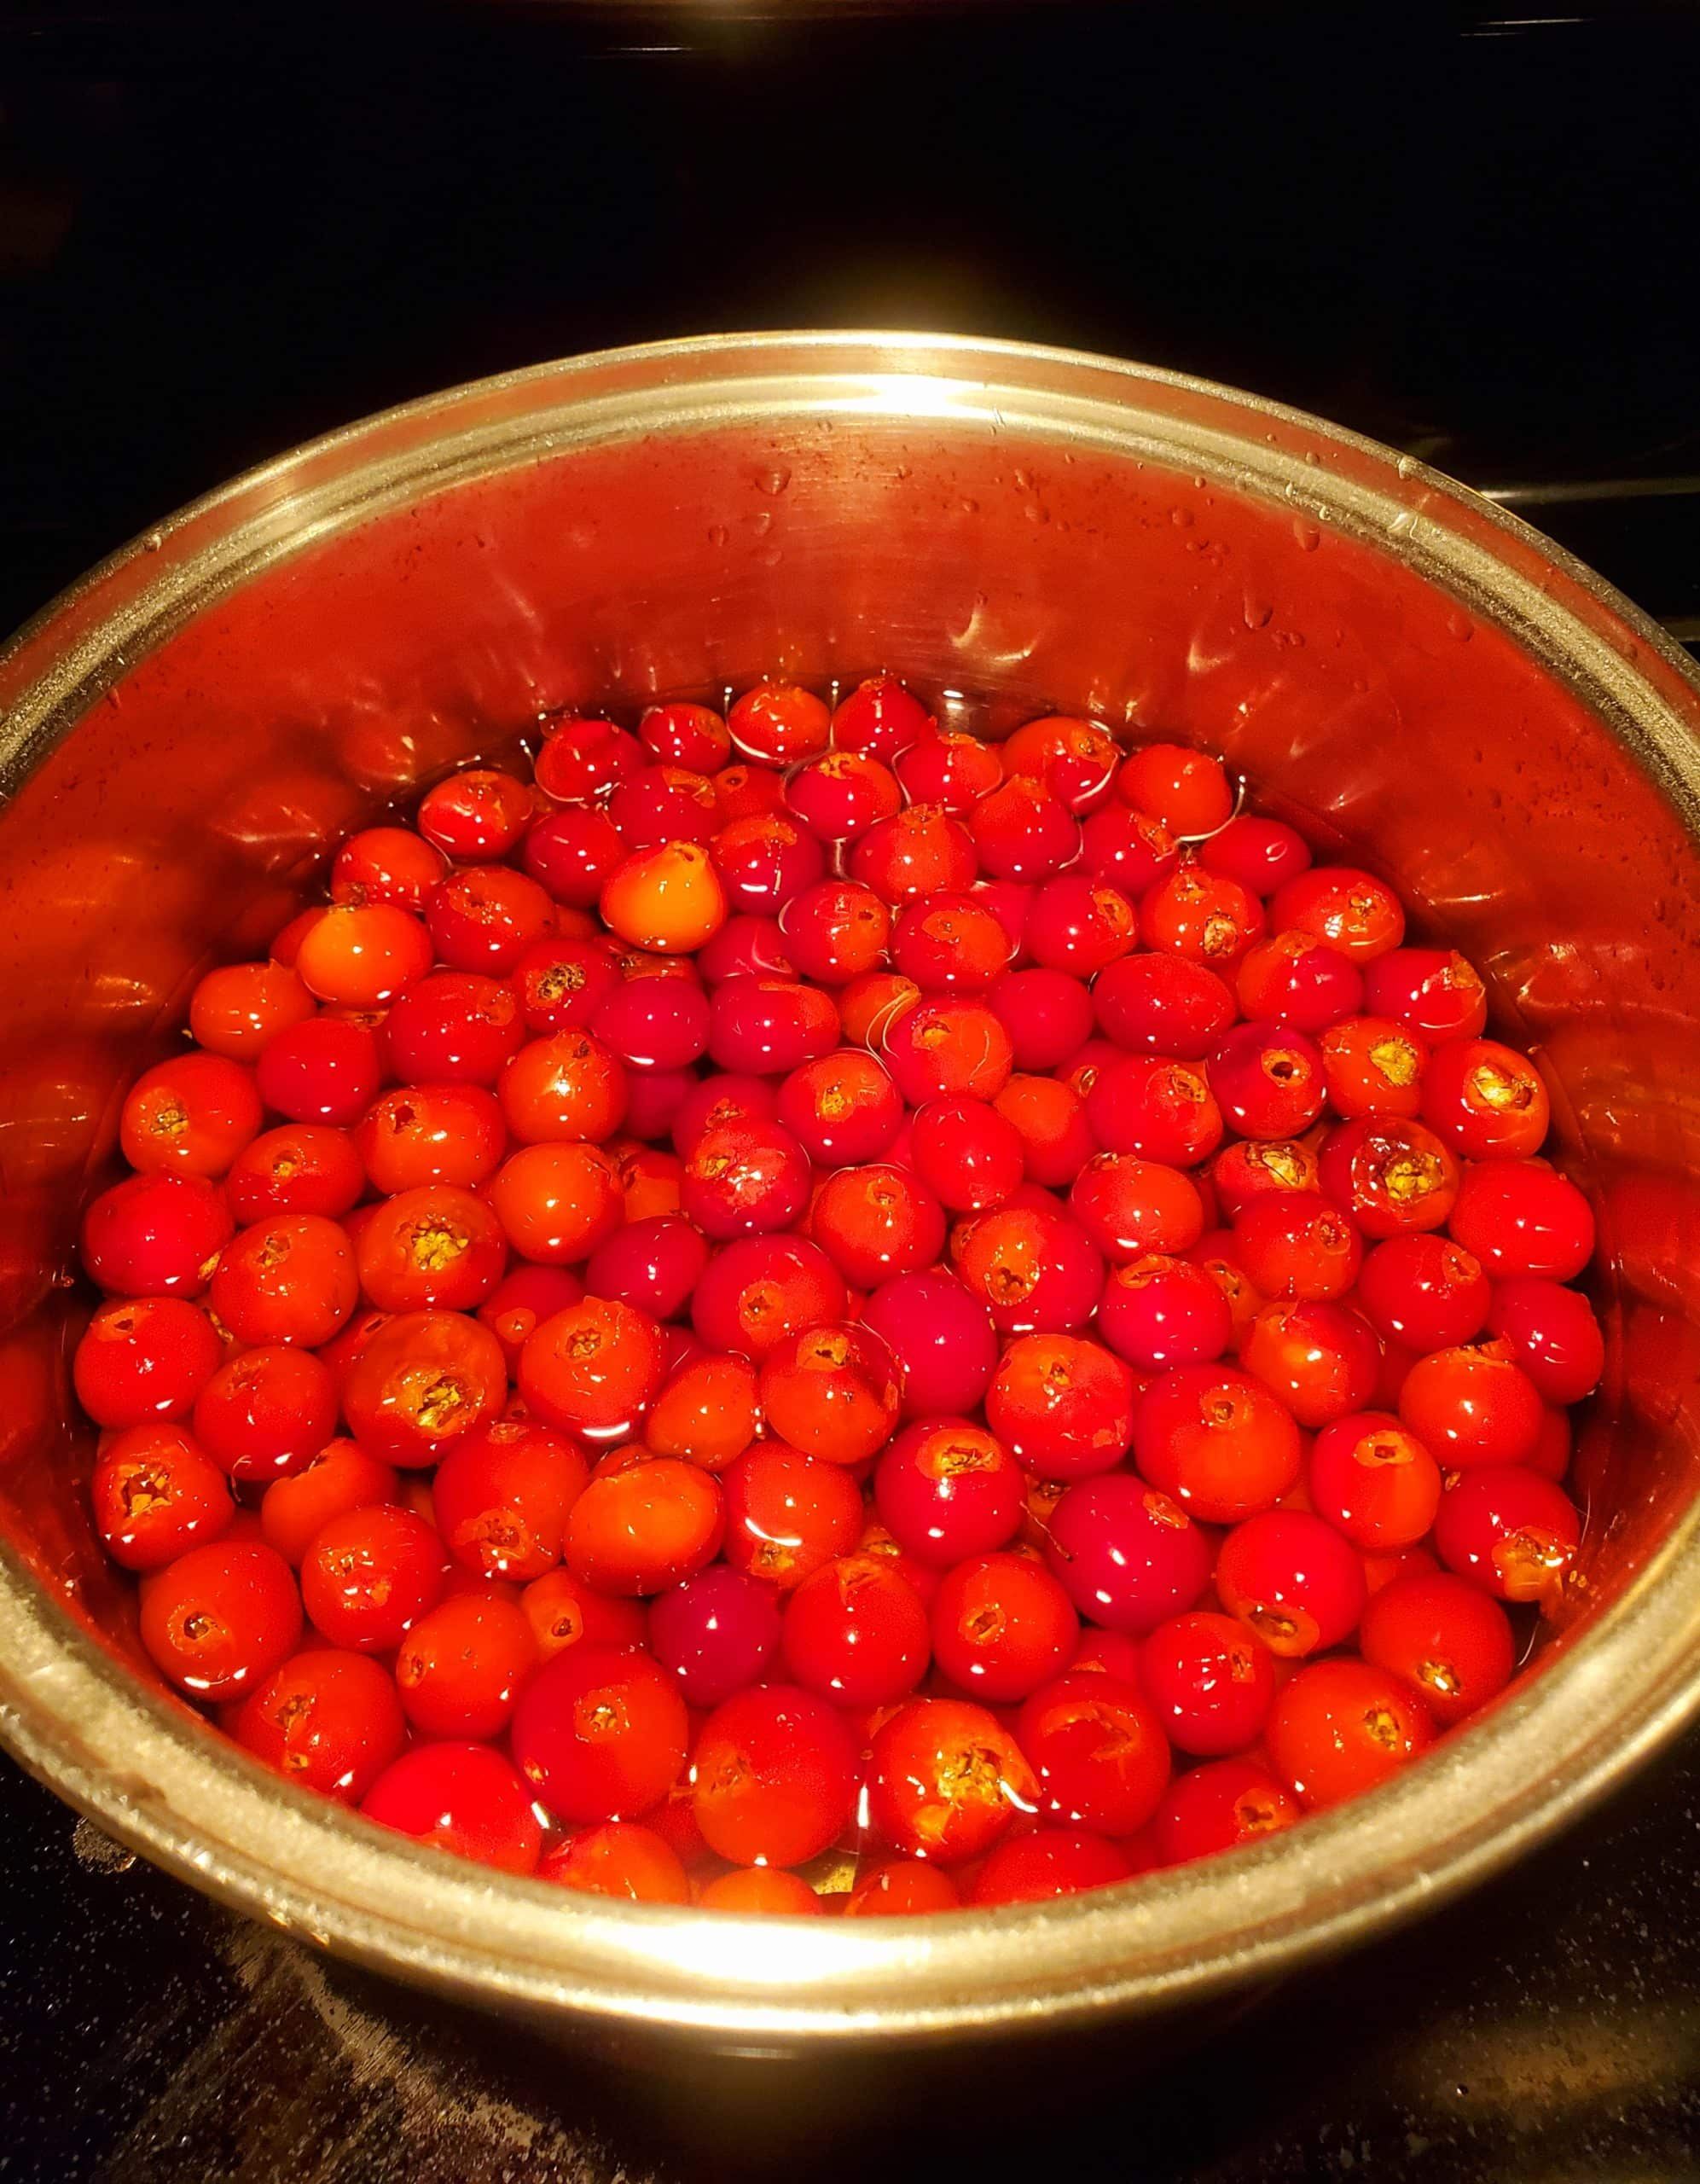 A large of bowl of highbush cranberries